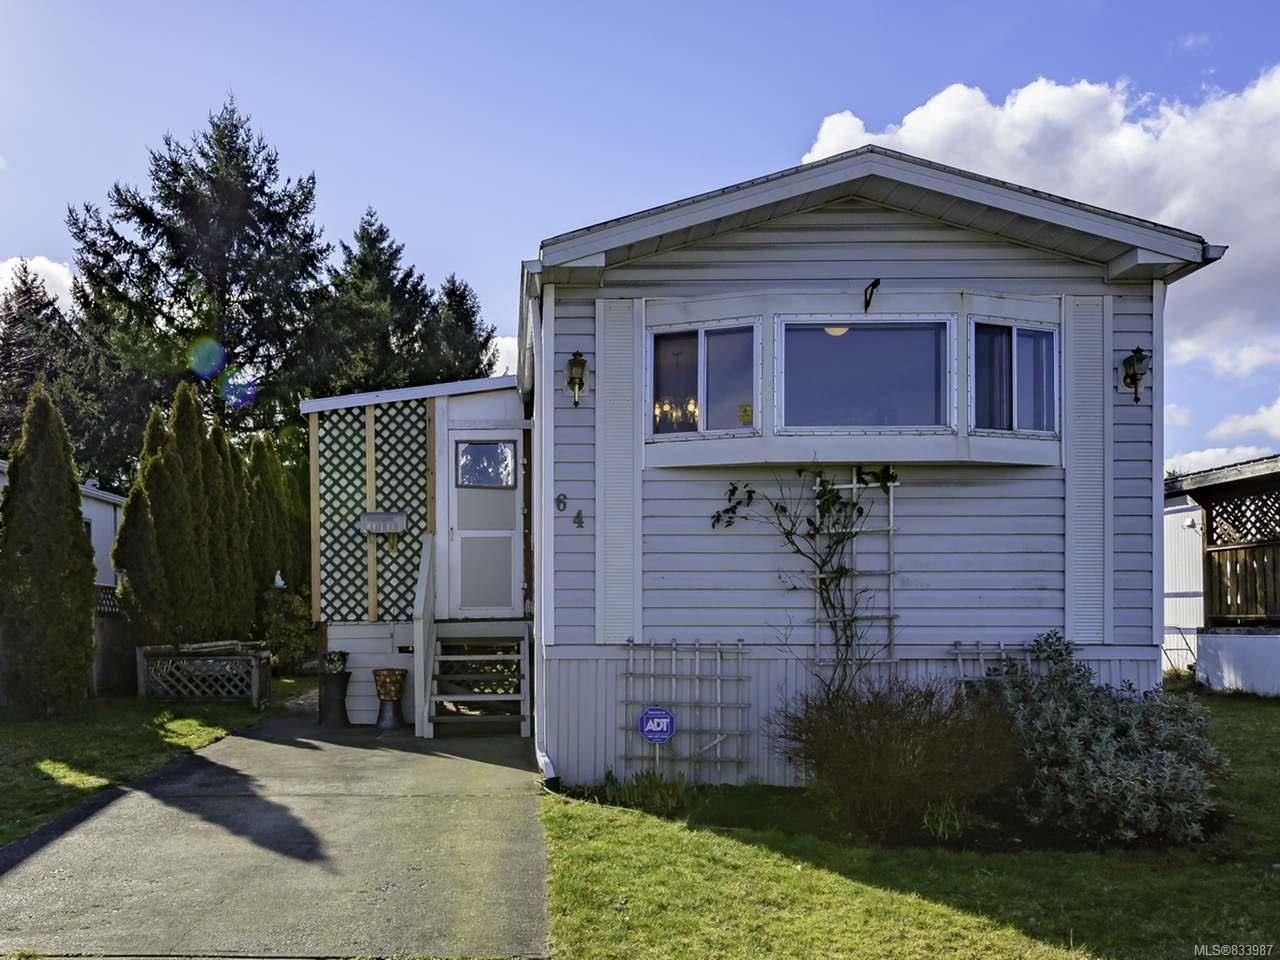 Photo 2: Photos: 64 390 Cowichan Ave in COURTENAY: CV Courtenay East Manufactured Home for sale (Comox Valley)  : MLS®# 833987